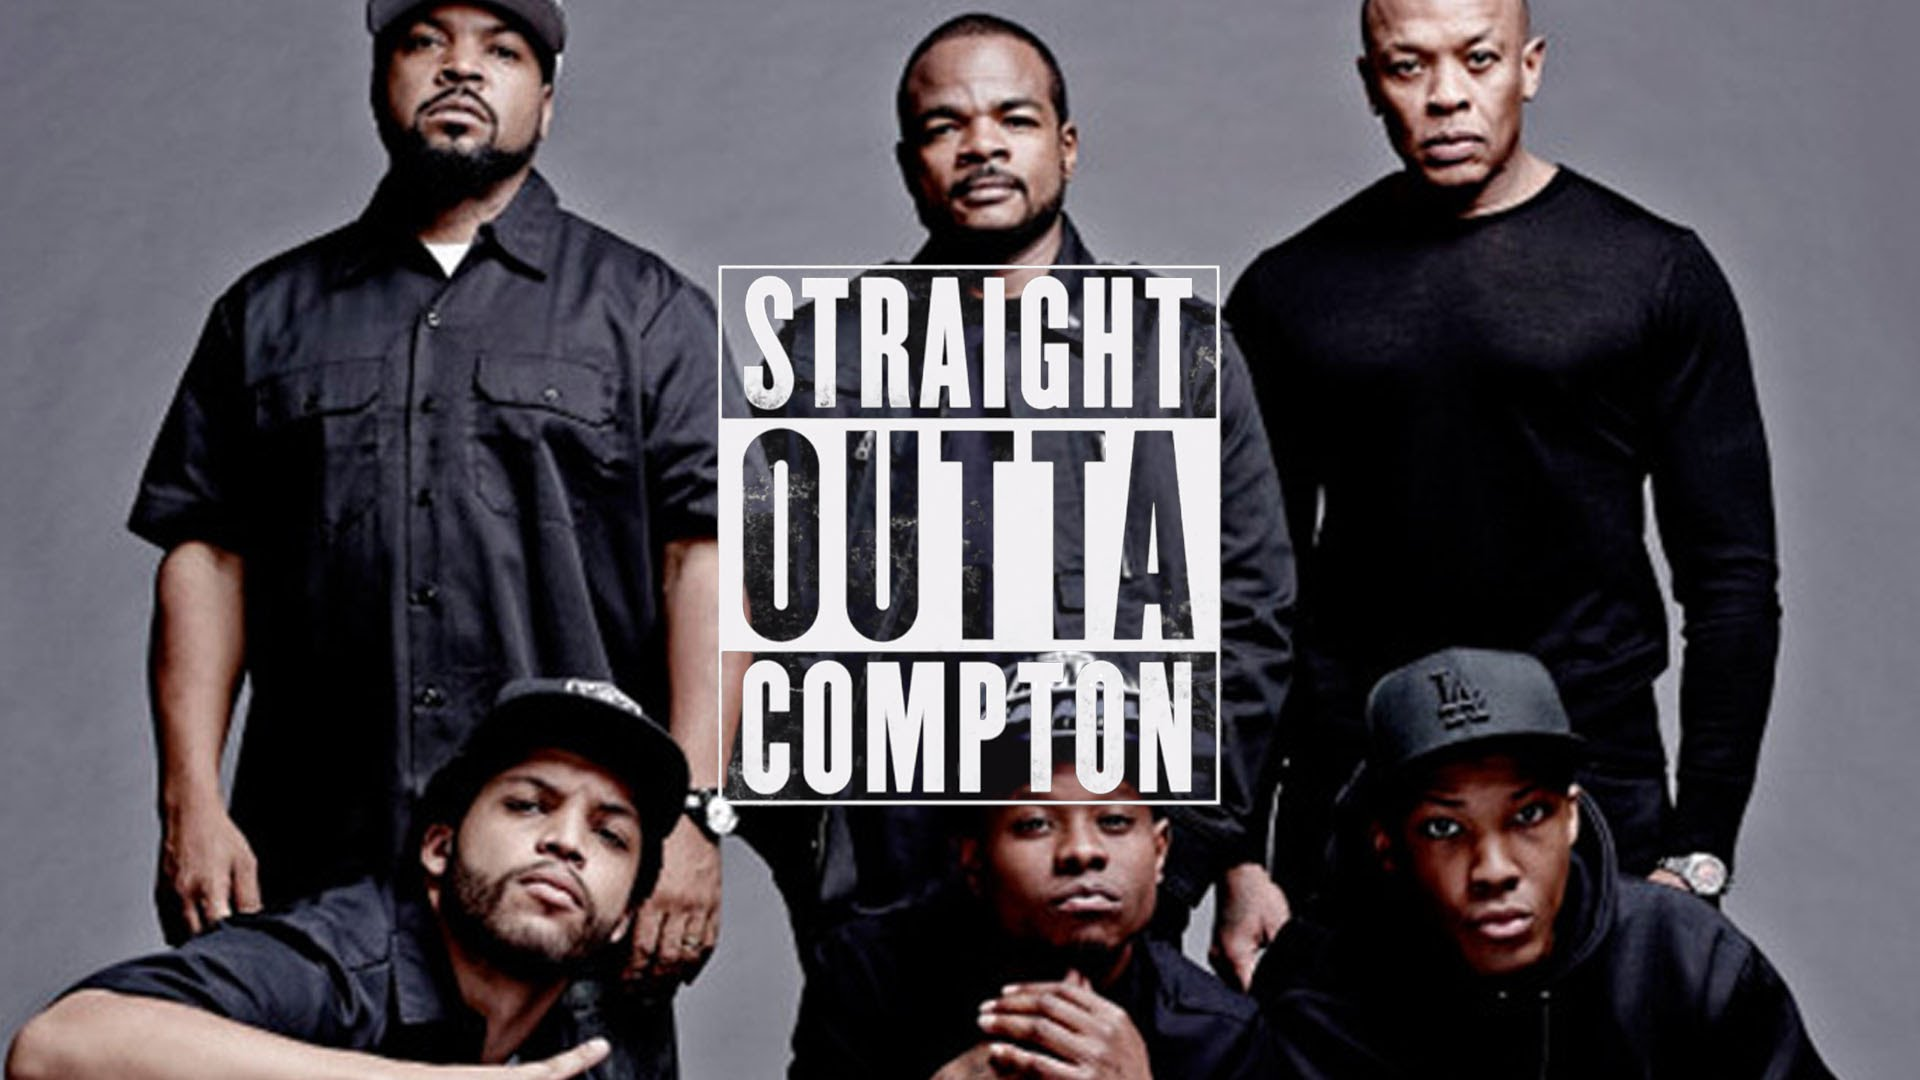 STRAIGHT OUTTA COMPTON ONE OF THE SUMMERS BEST REVIEW